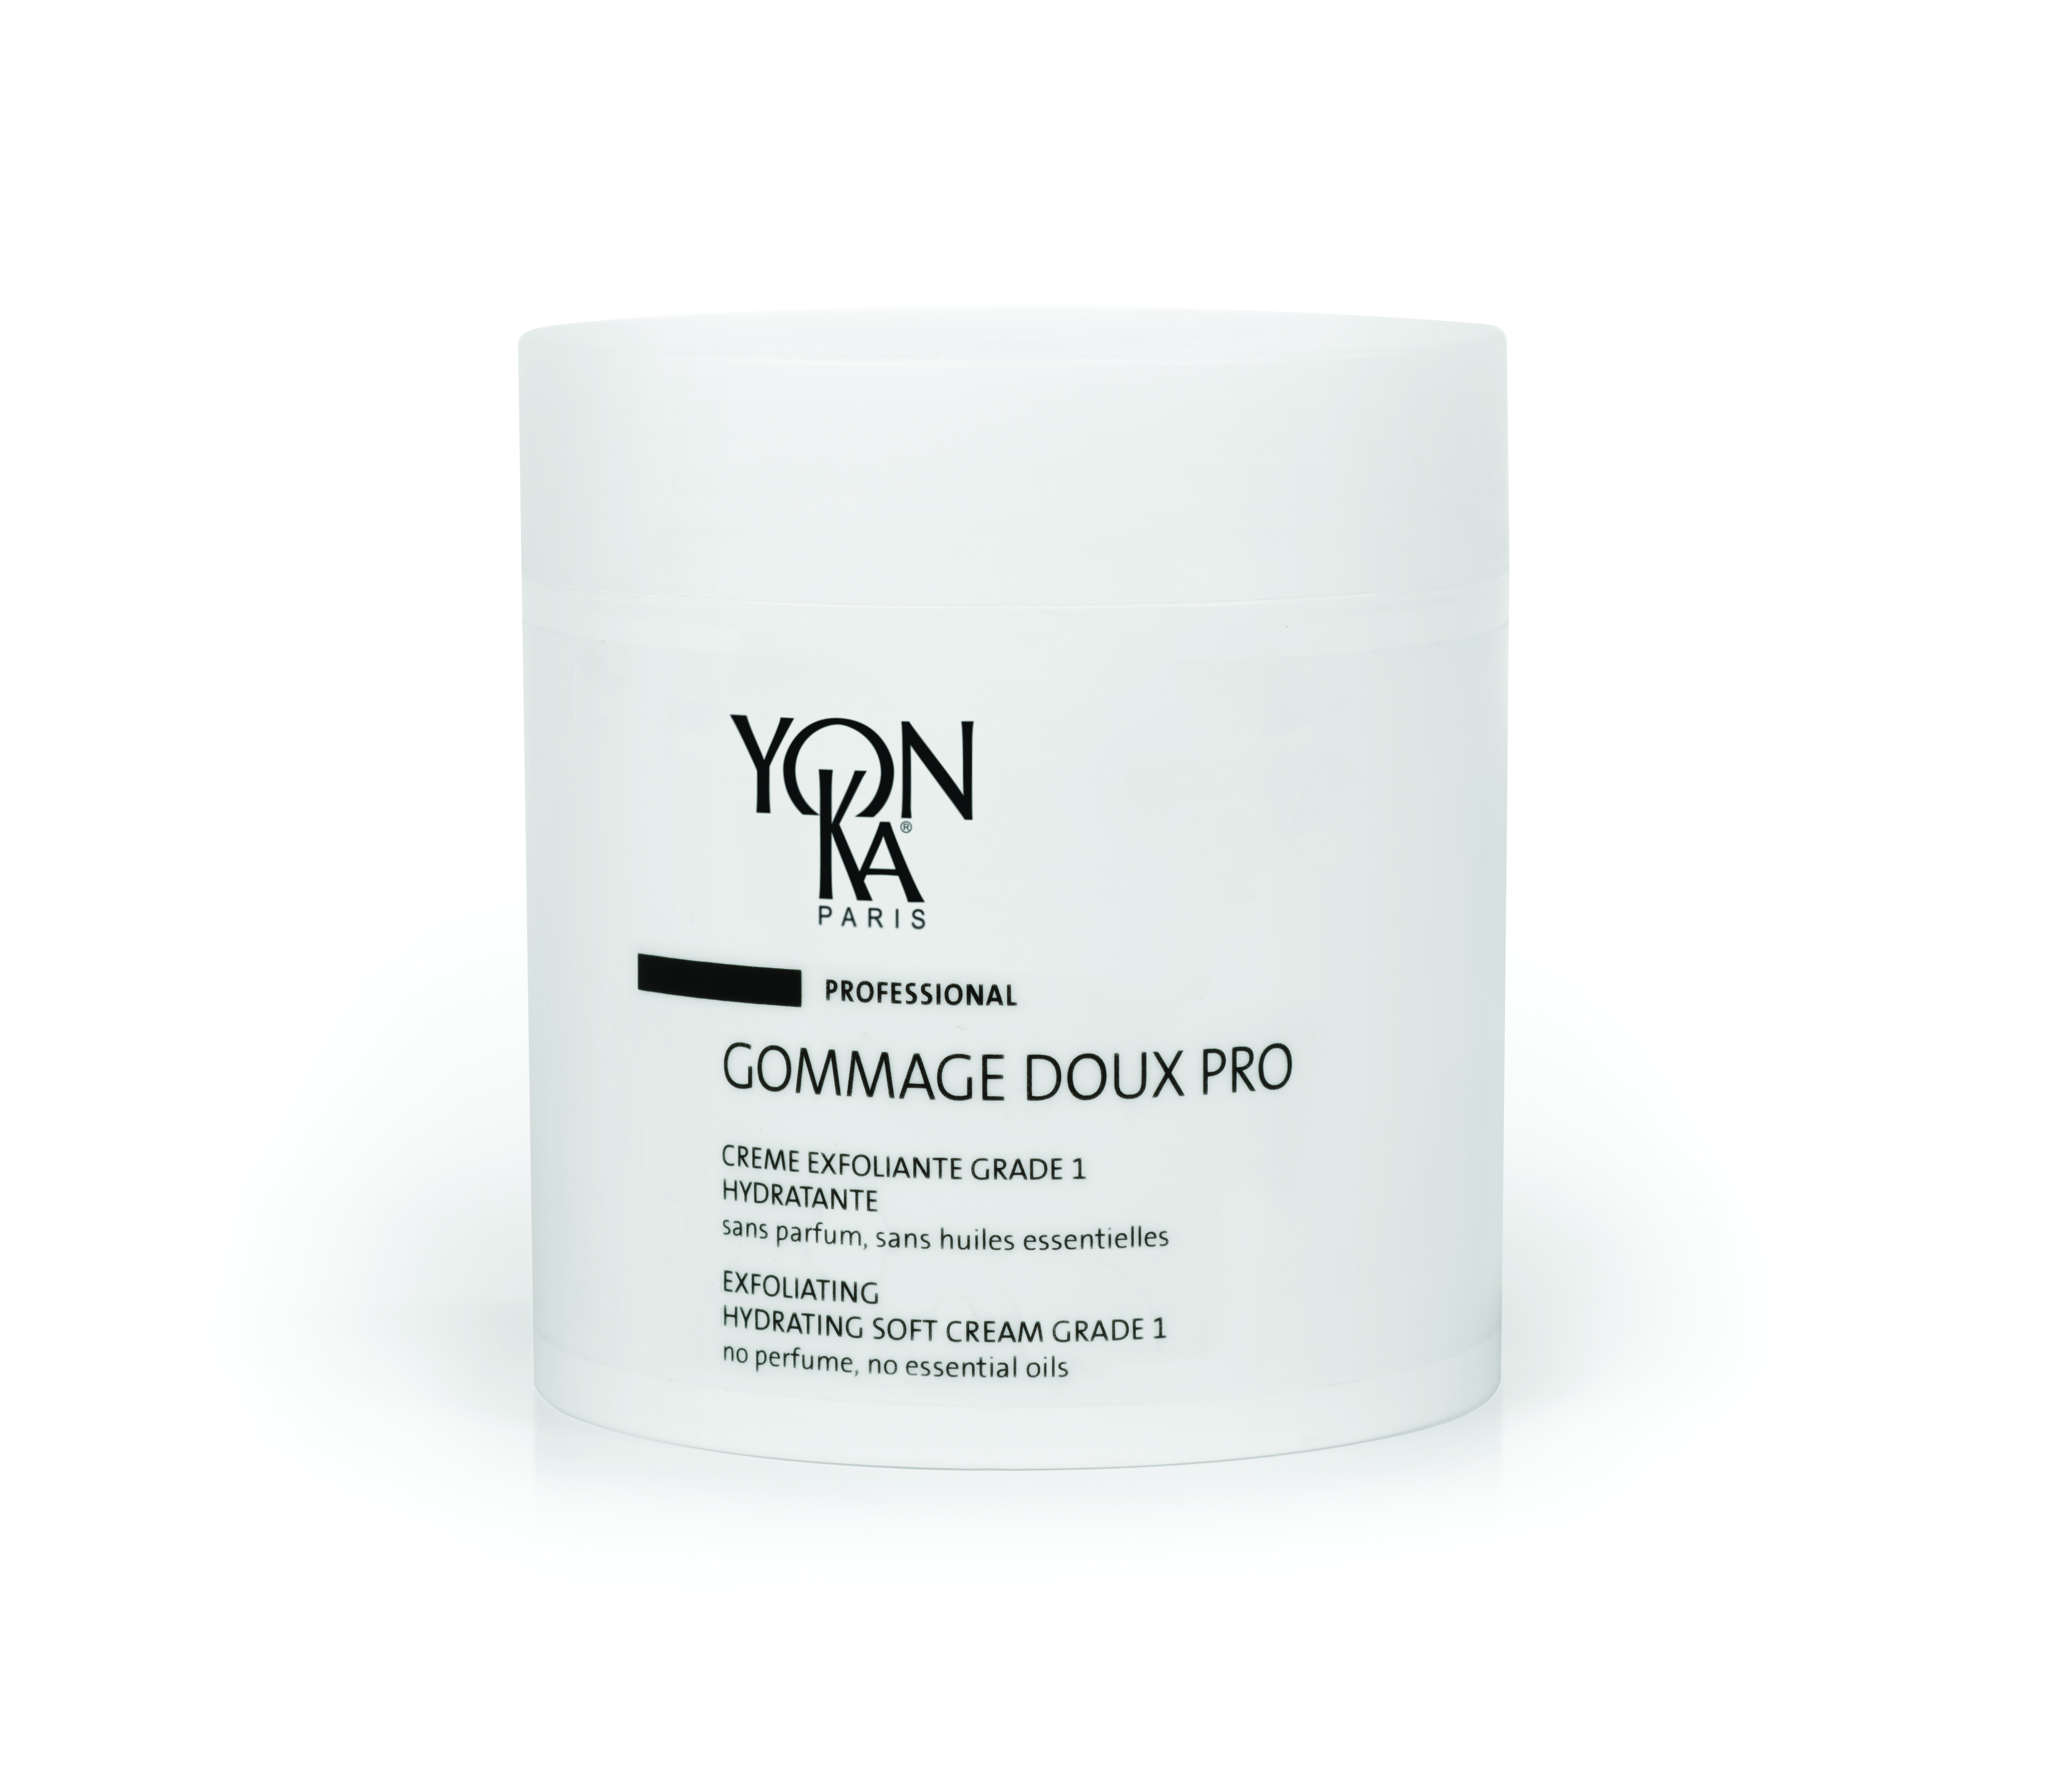 Gommage Doux Pro (500 g)